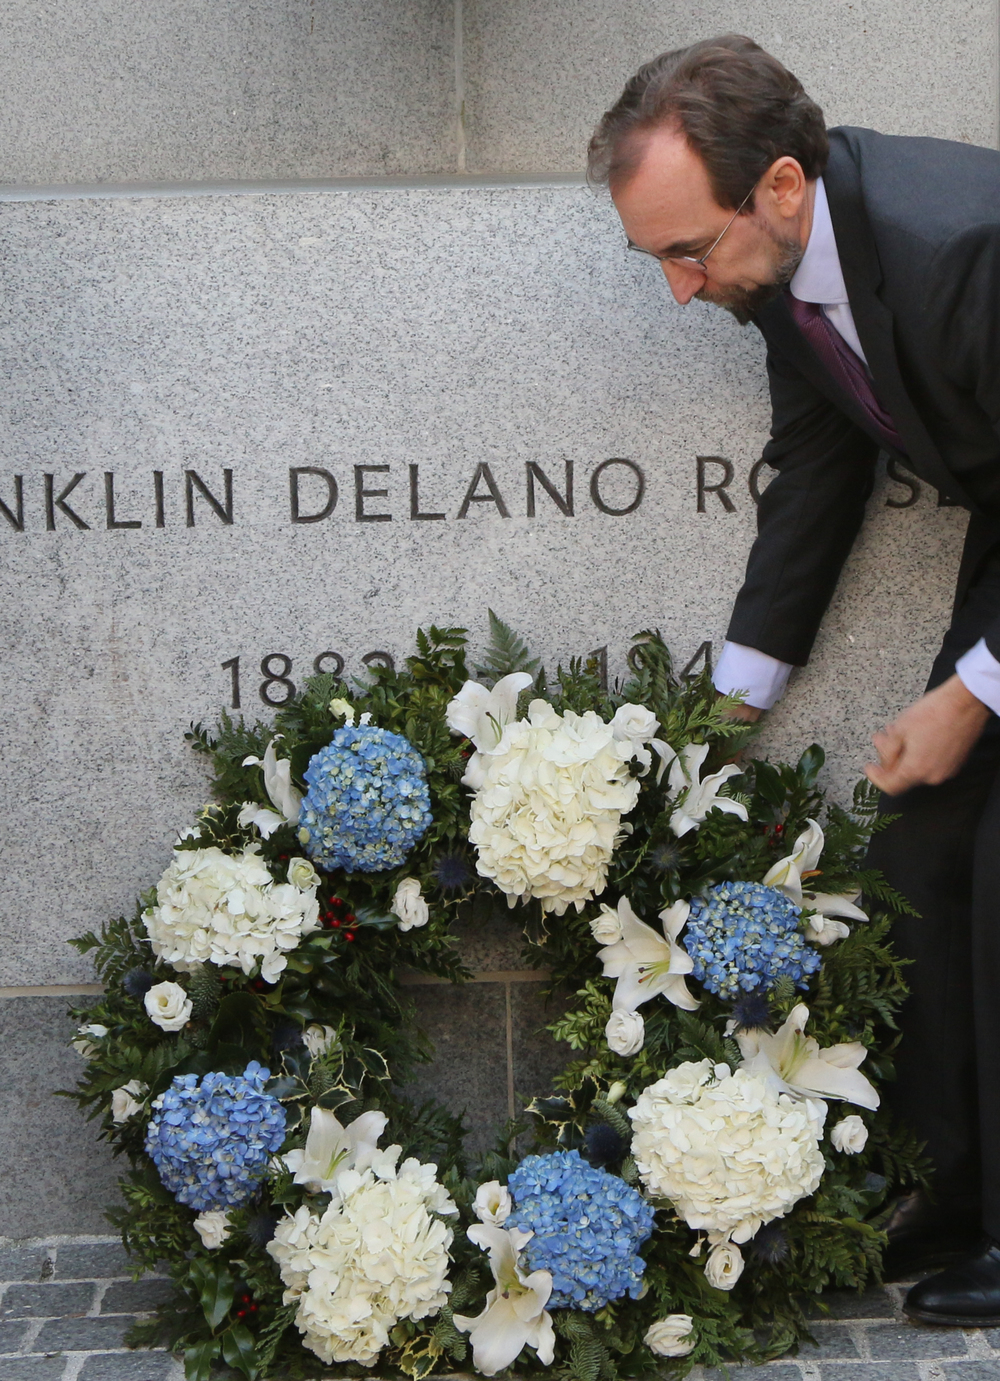 Zeid Ra'ad Al Hussein lays a wreath at the bust of FDR